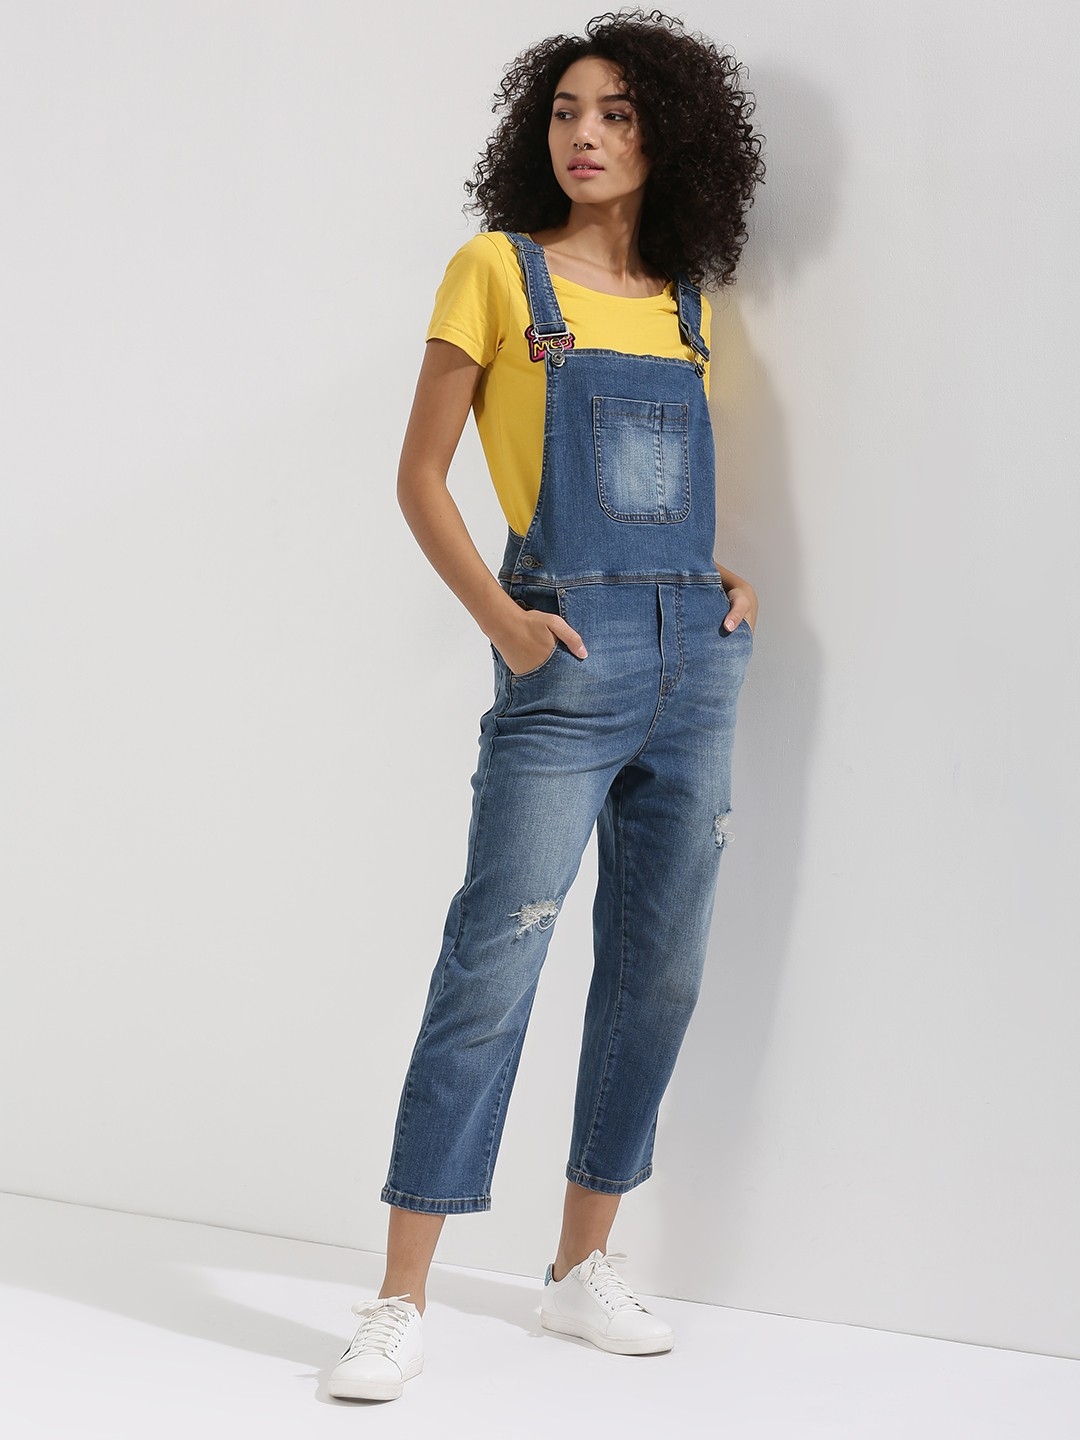 Buy ONLY Denim Dungaree For Women - Women's Blue Dungarees Online ...